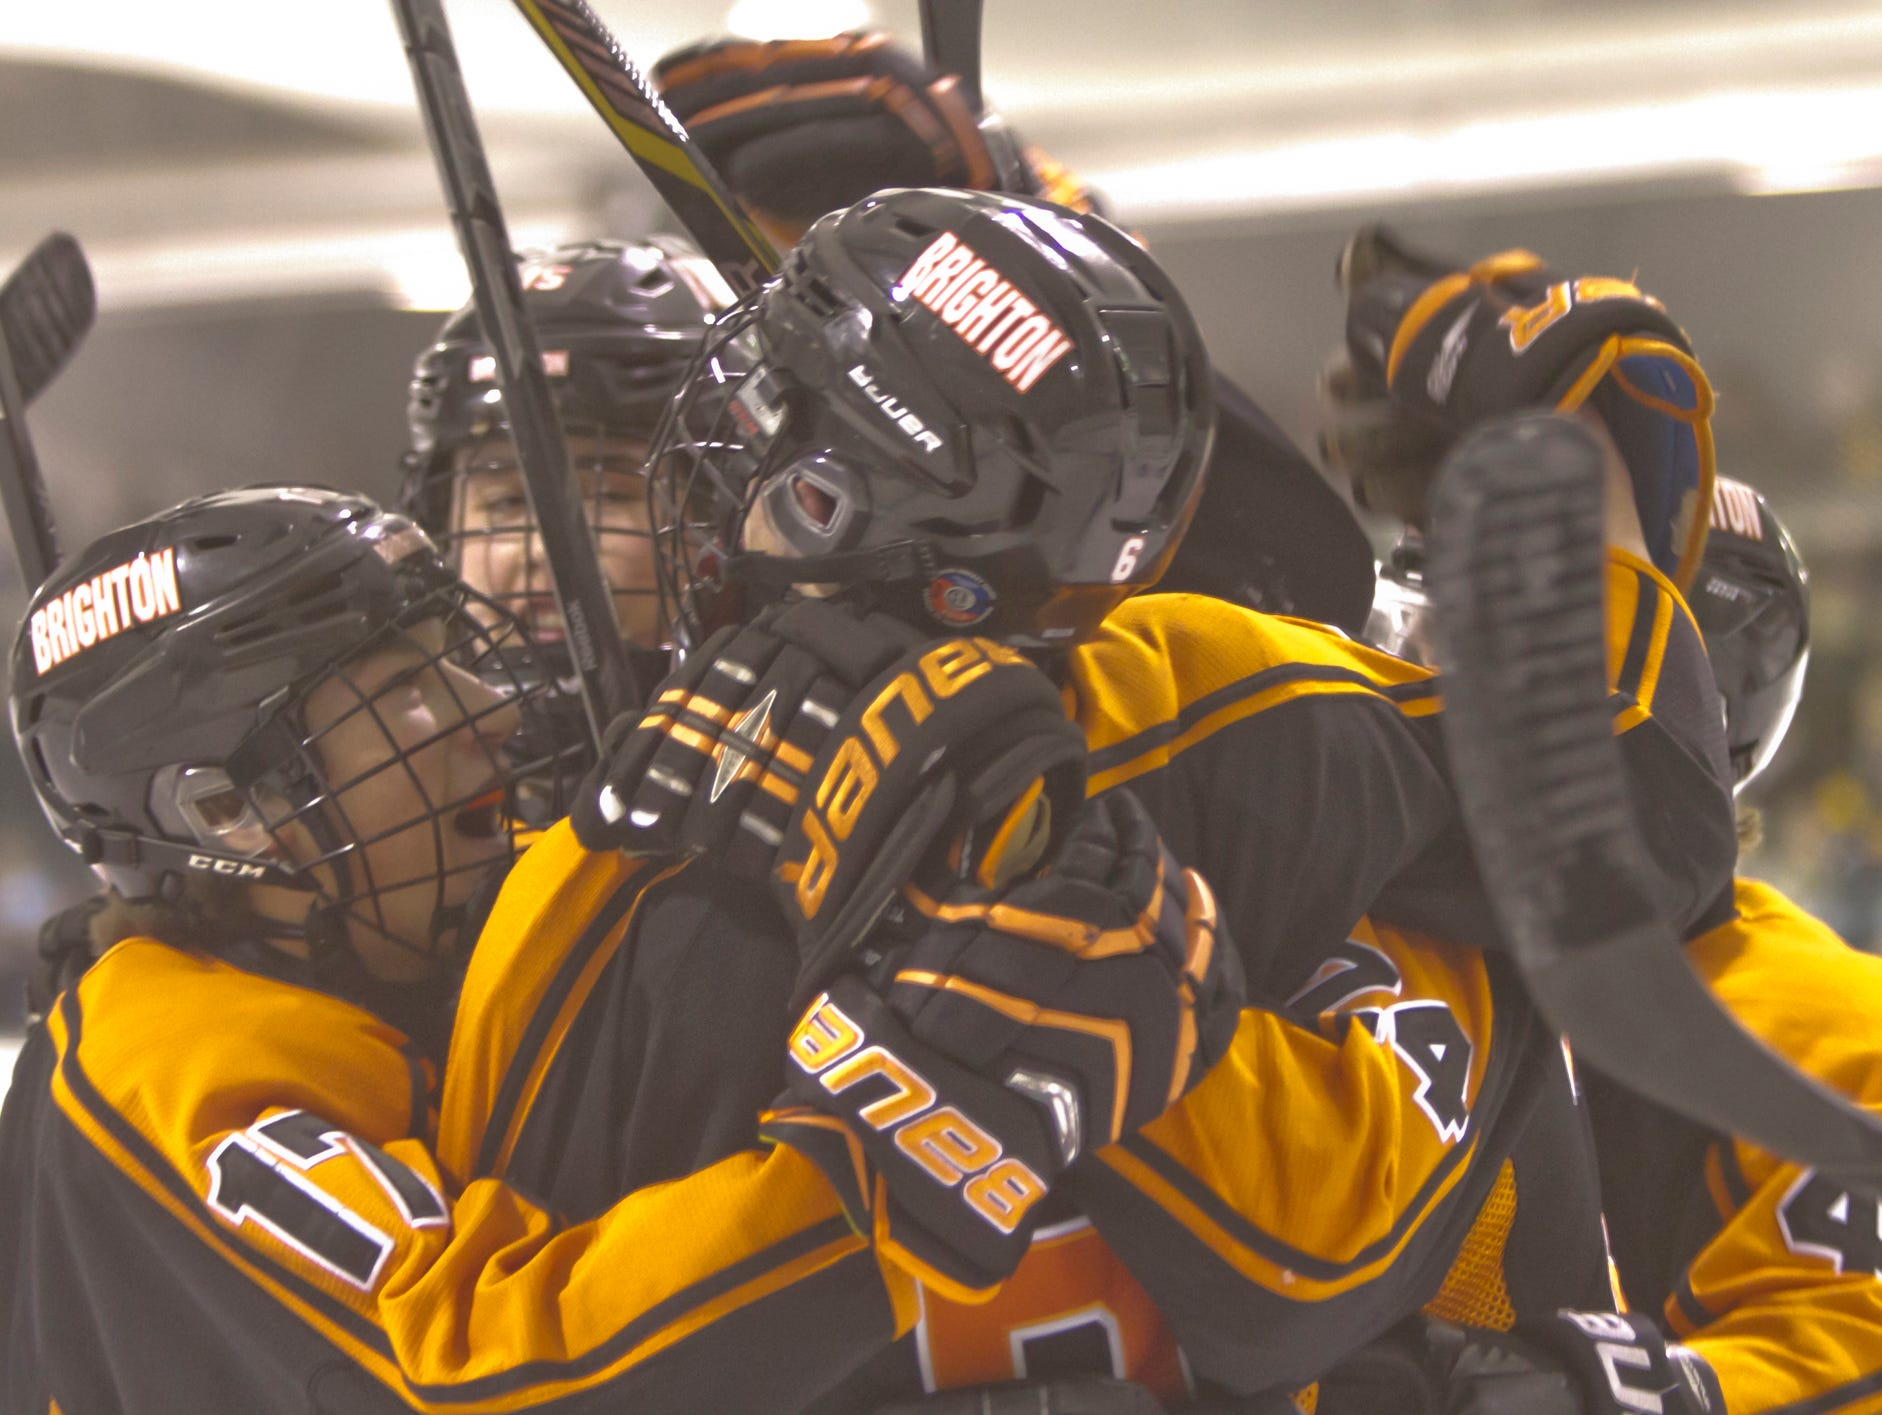 Brighton celebrates Colin Bilek's goal in the first period of Wednesday's 4-3 overtime loss to Howell at Grand Oaks Ice Arena.